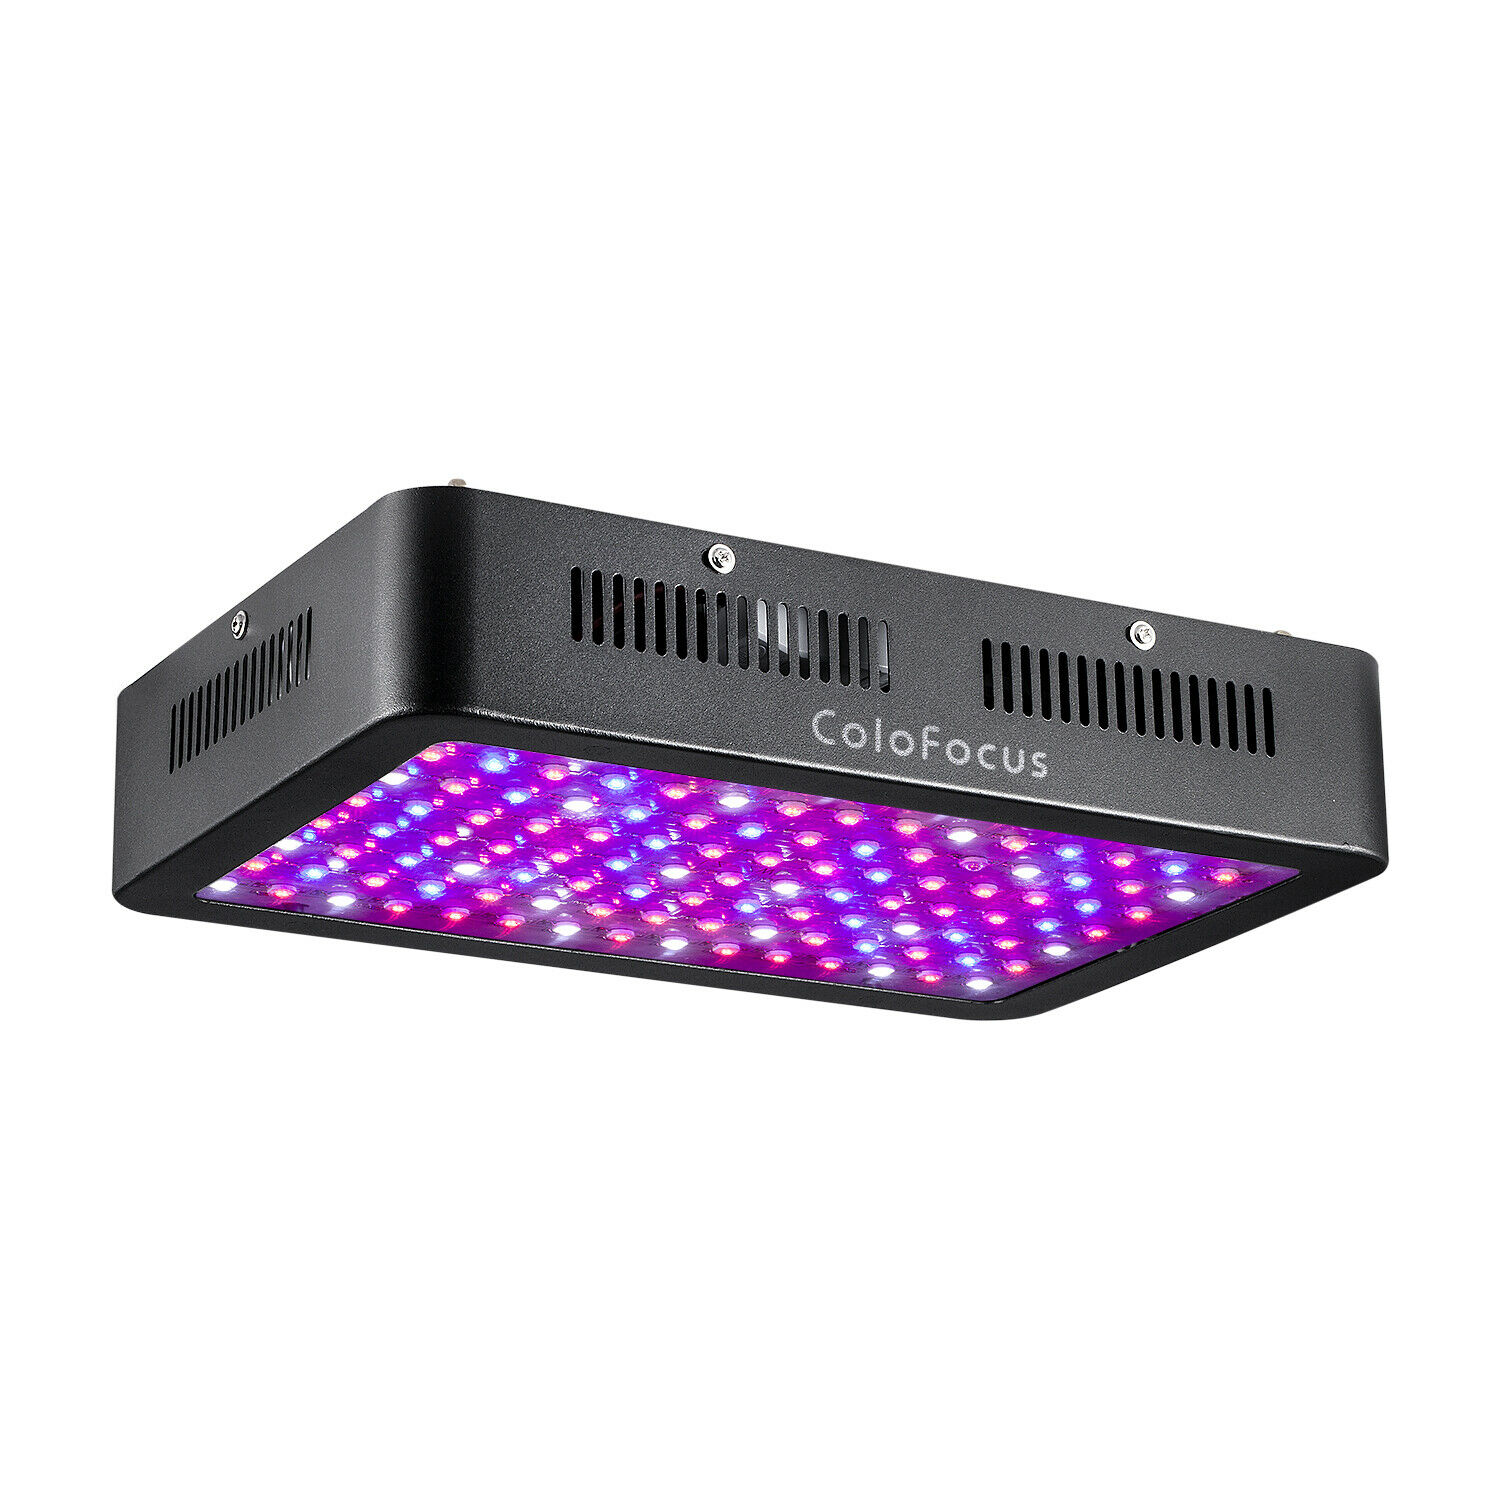 New 1200W LED Grow Light ColoFocus Full Spectrum LED Lights for Indoor Plant Black ColoFocus Does not Apply for 44.99.